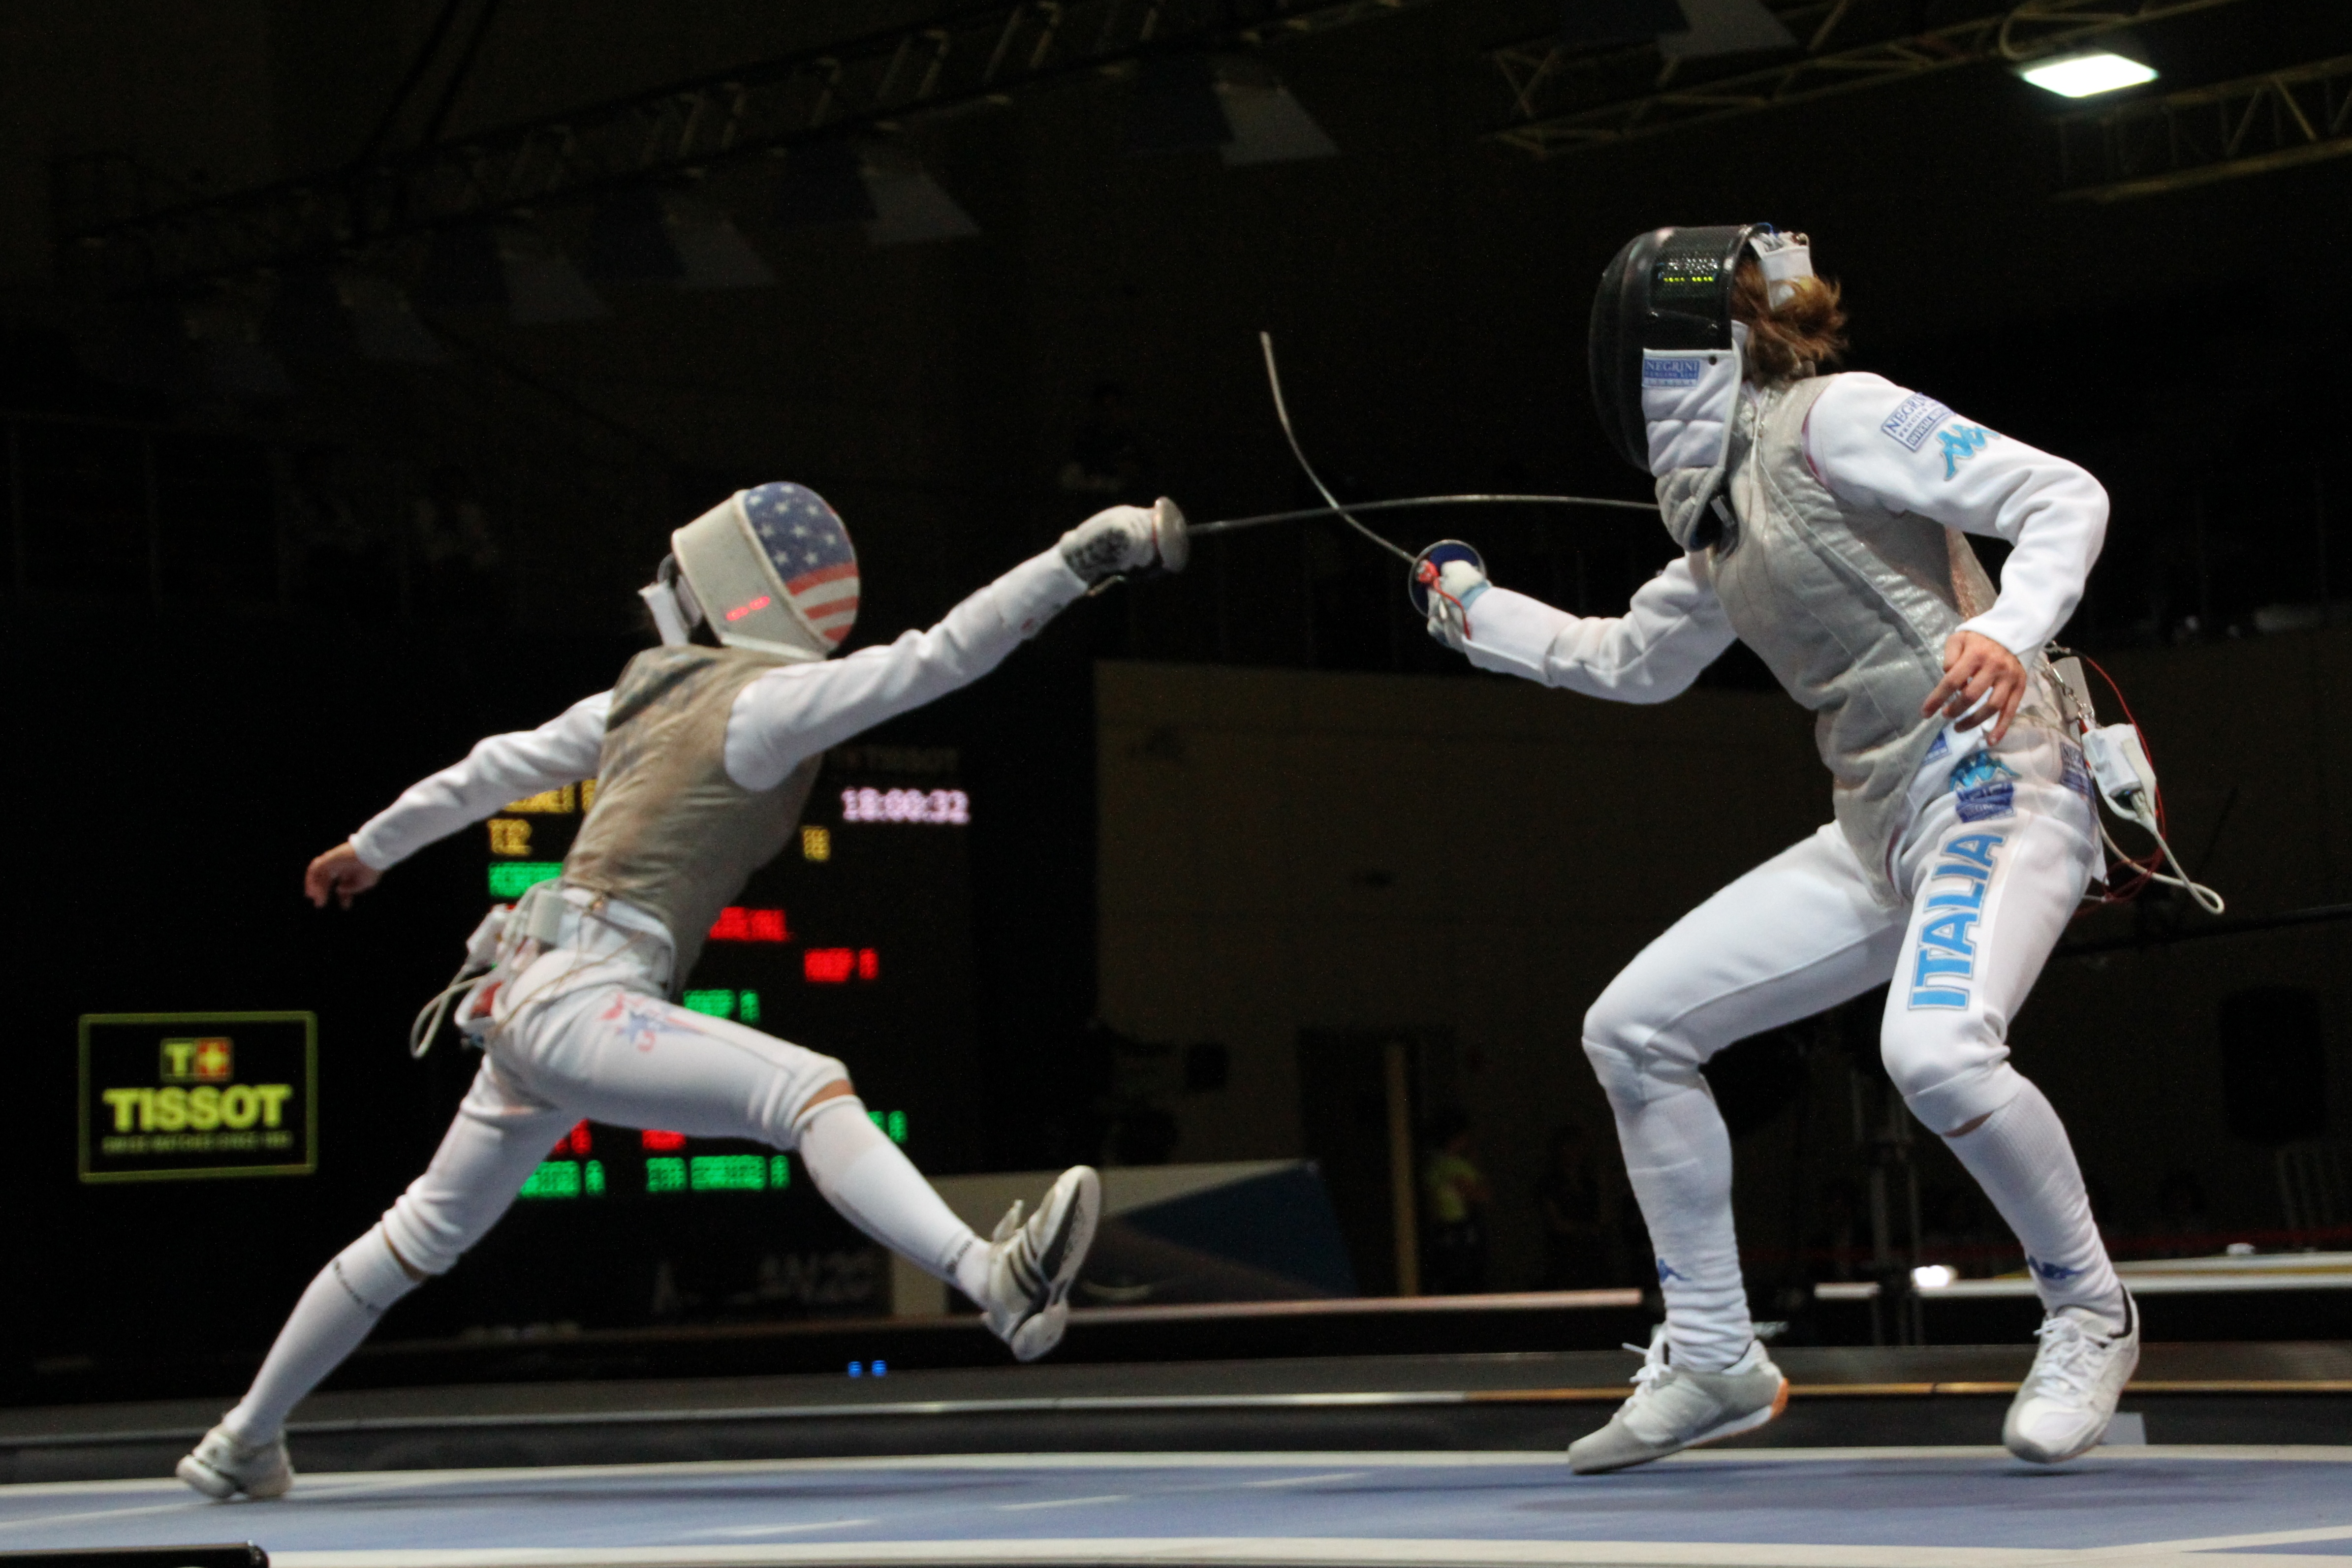 Lee Kiefer fencing